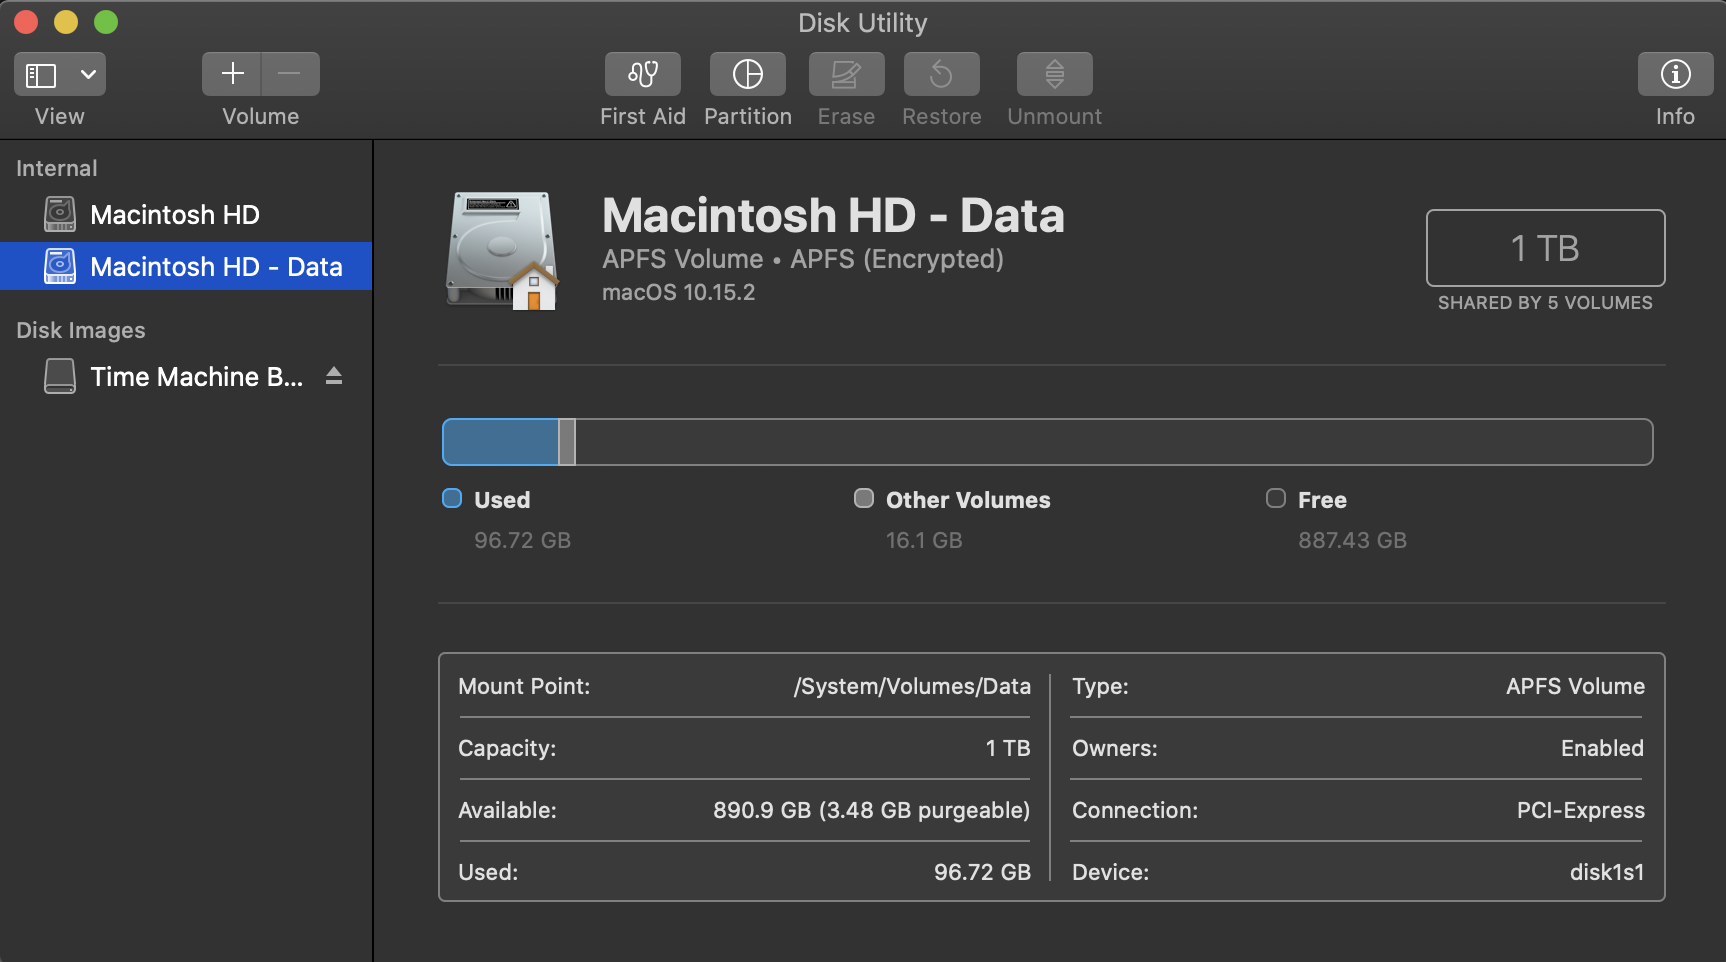 Check storage space with Disk Utility